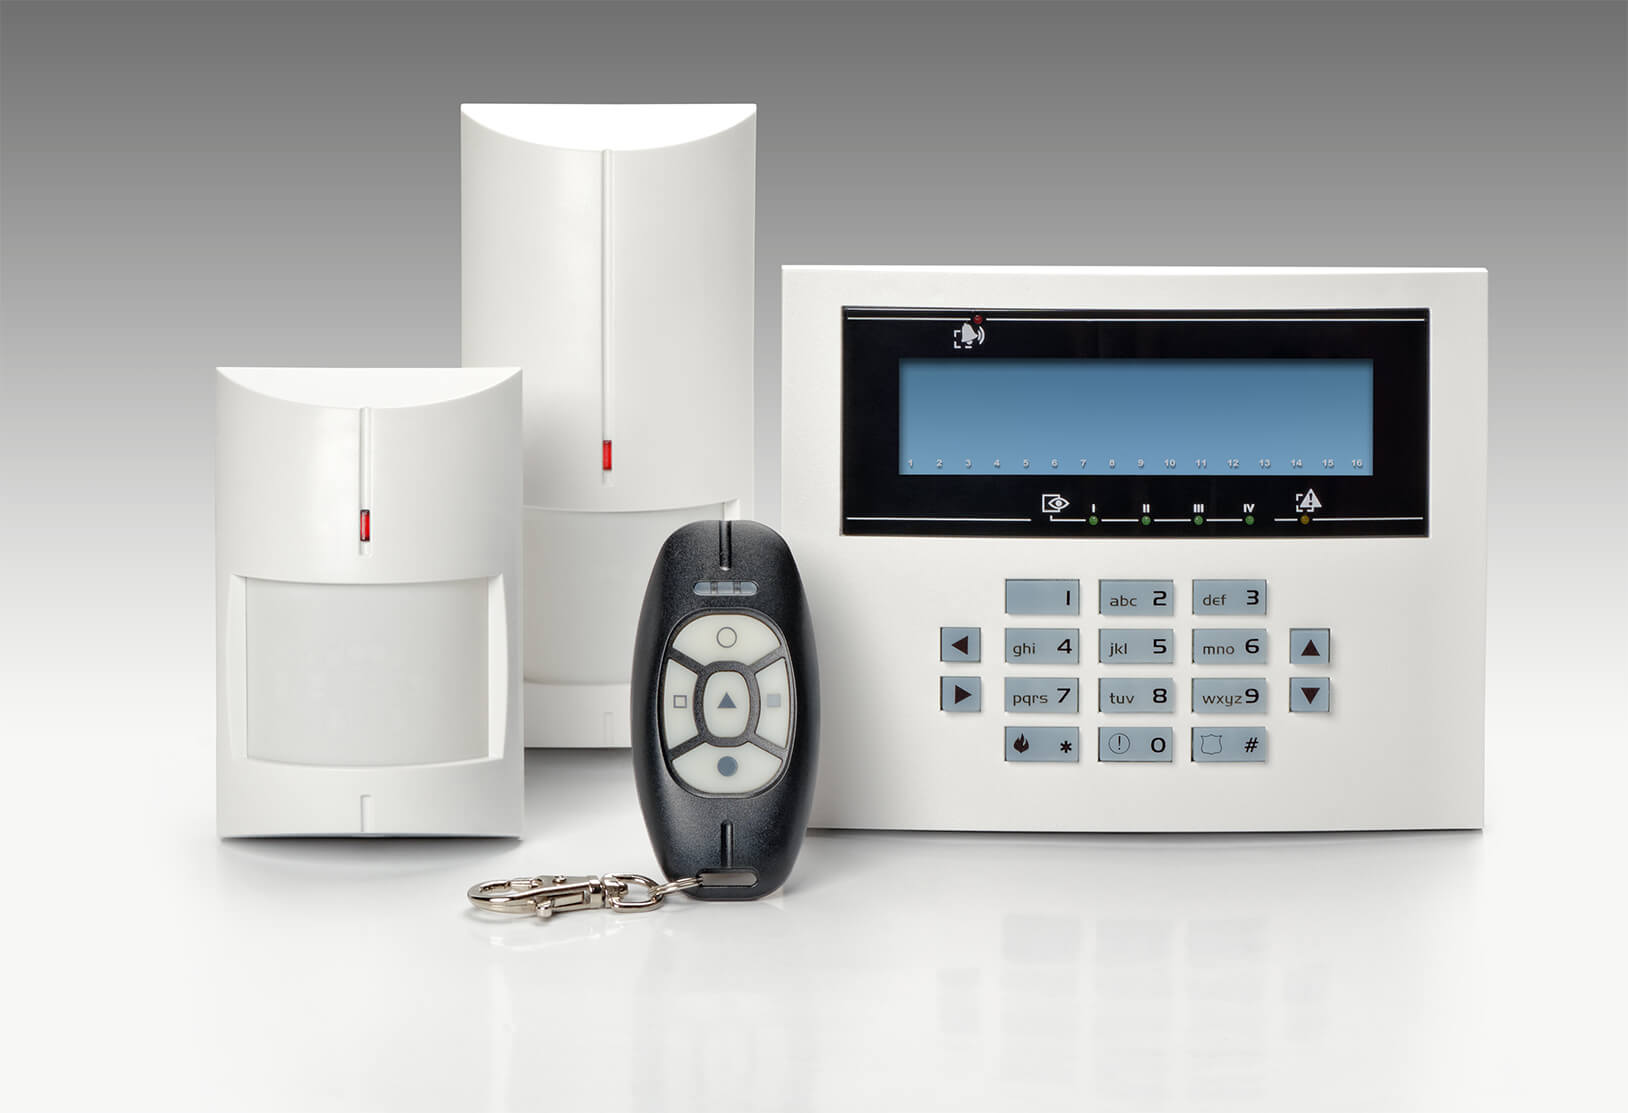 Burglar Alarms Repair in Battersea SW1 - Local Battersea SW1 alarm engineers.Call 02078872244 - See cost/price for burglar alarm repair and book your alarm engineer. No Hidden charges,No Contracts, Book as you need.Engineers on demand.All alarm makes repaired.Same day service ability.